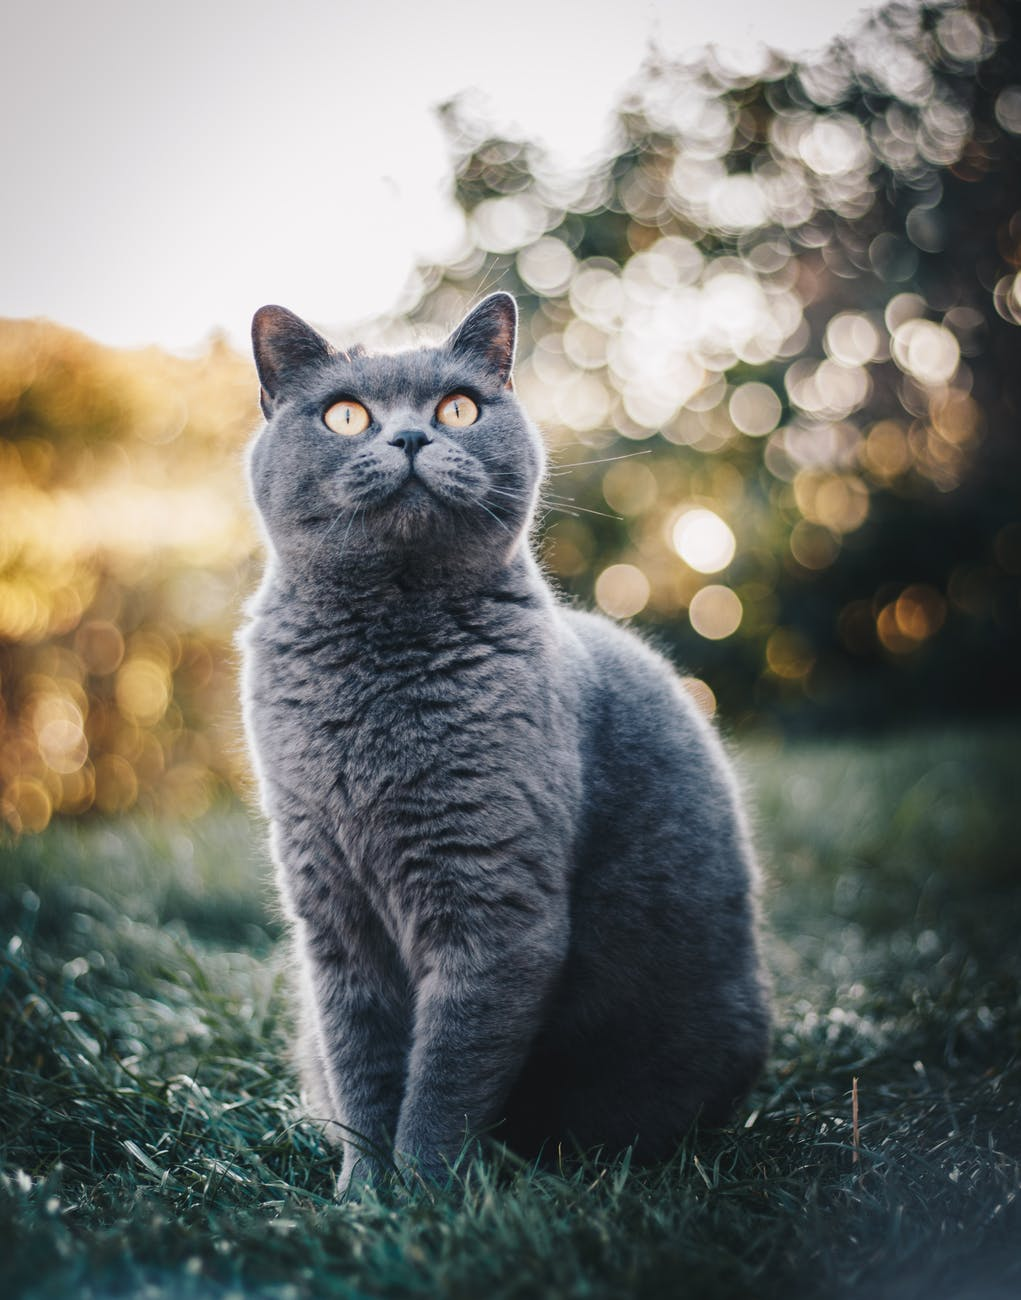 photo of british shorthair cat sitting on grass field